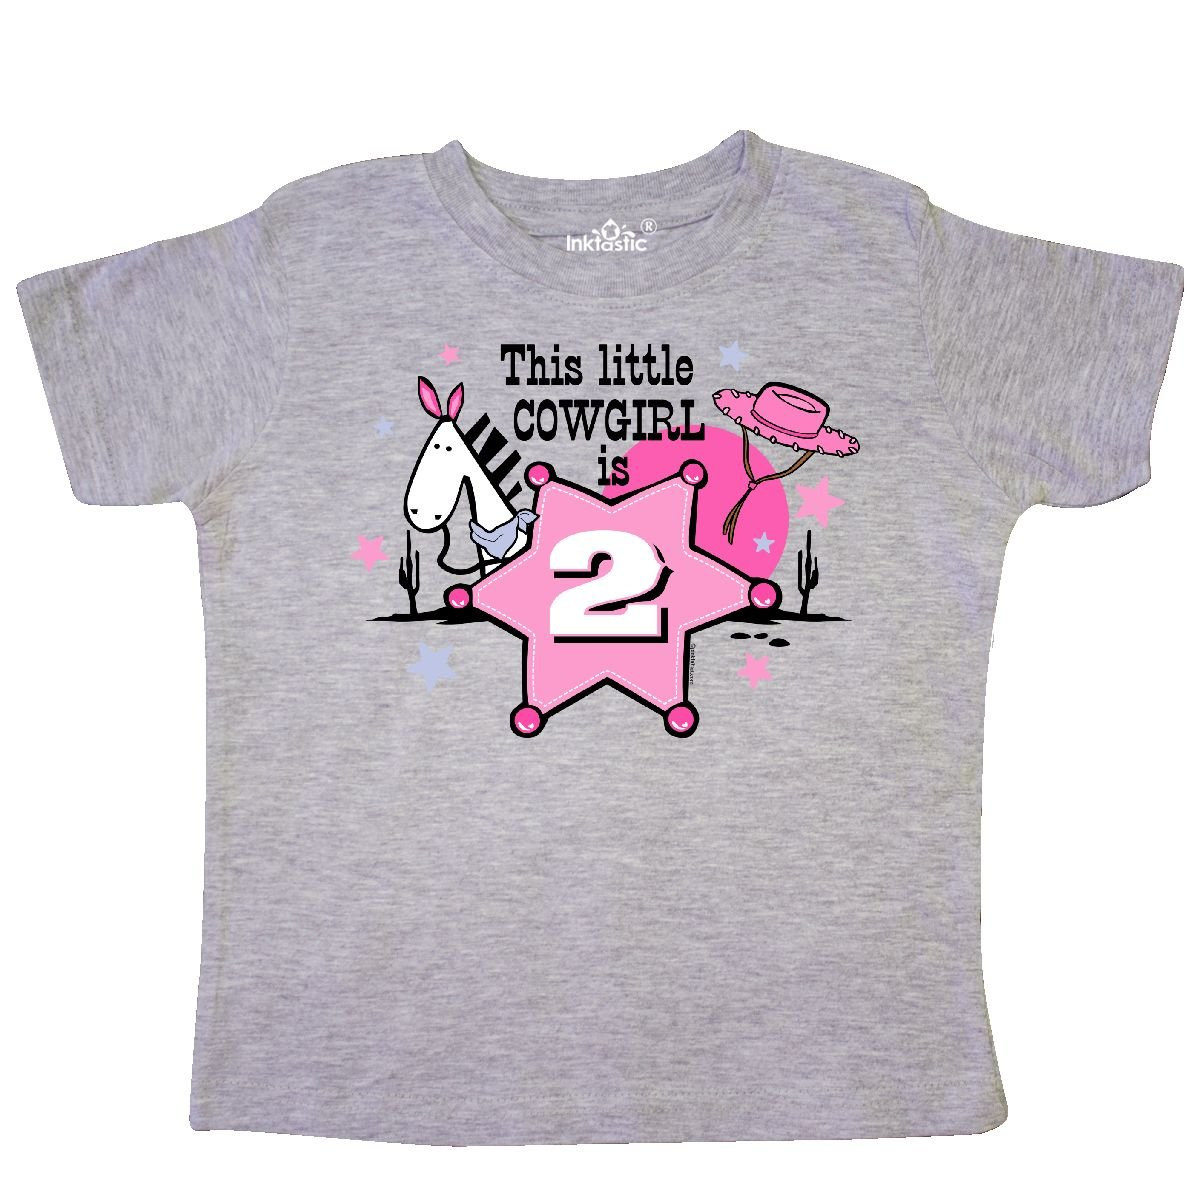 inktastic Little Cowgirl 2nd Birthday Toddler T-Shirt